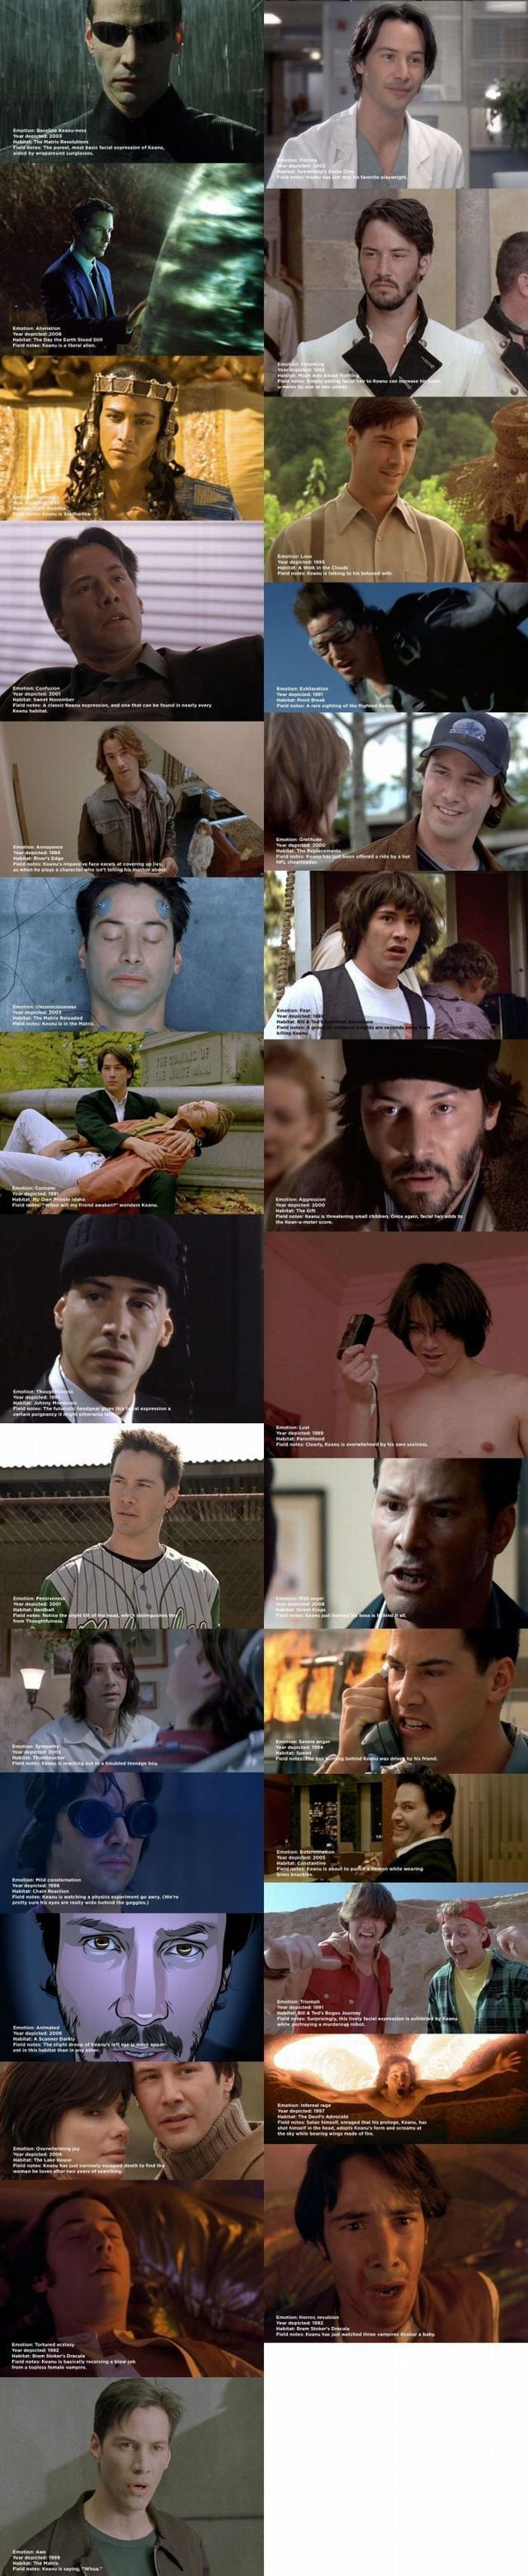 Sad Keanu Reeves is Being Photoshopped (42 pics)